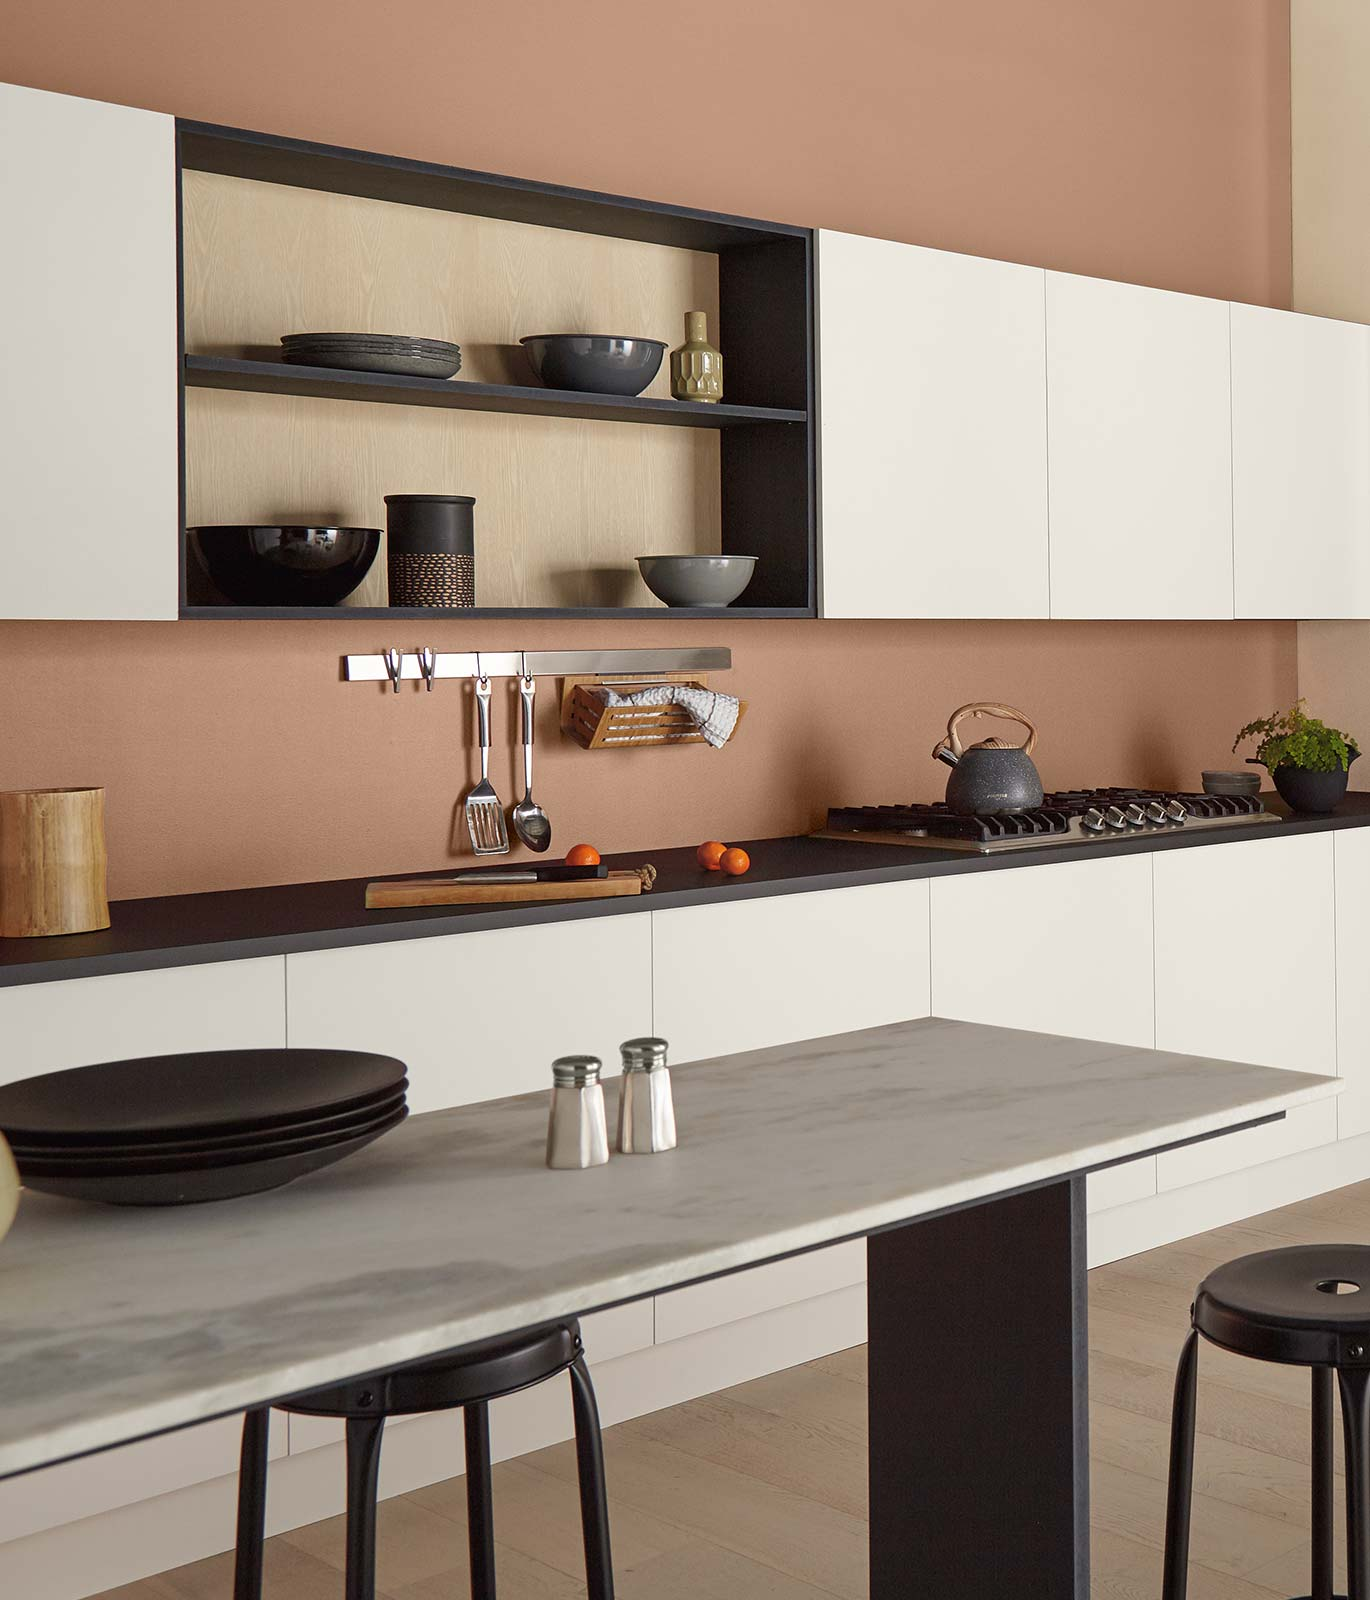 A kitchen painted in a burnt orange color with white cabinets and a white long table. The décor is subtle letting the color of the walls stand out.